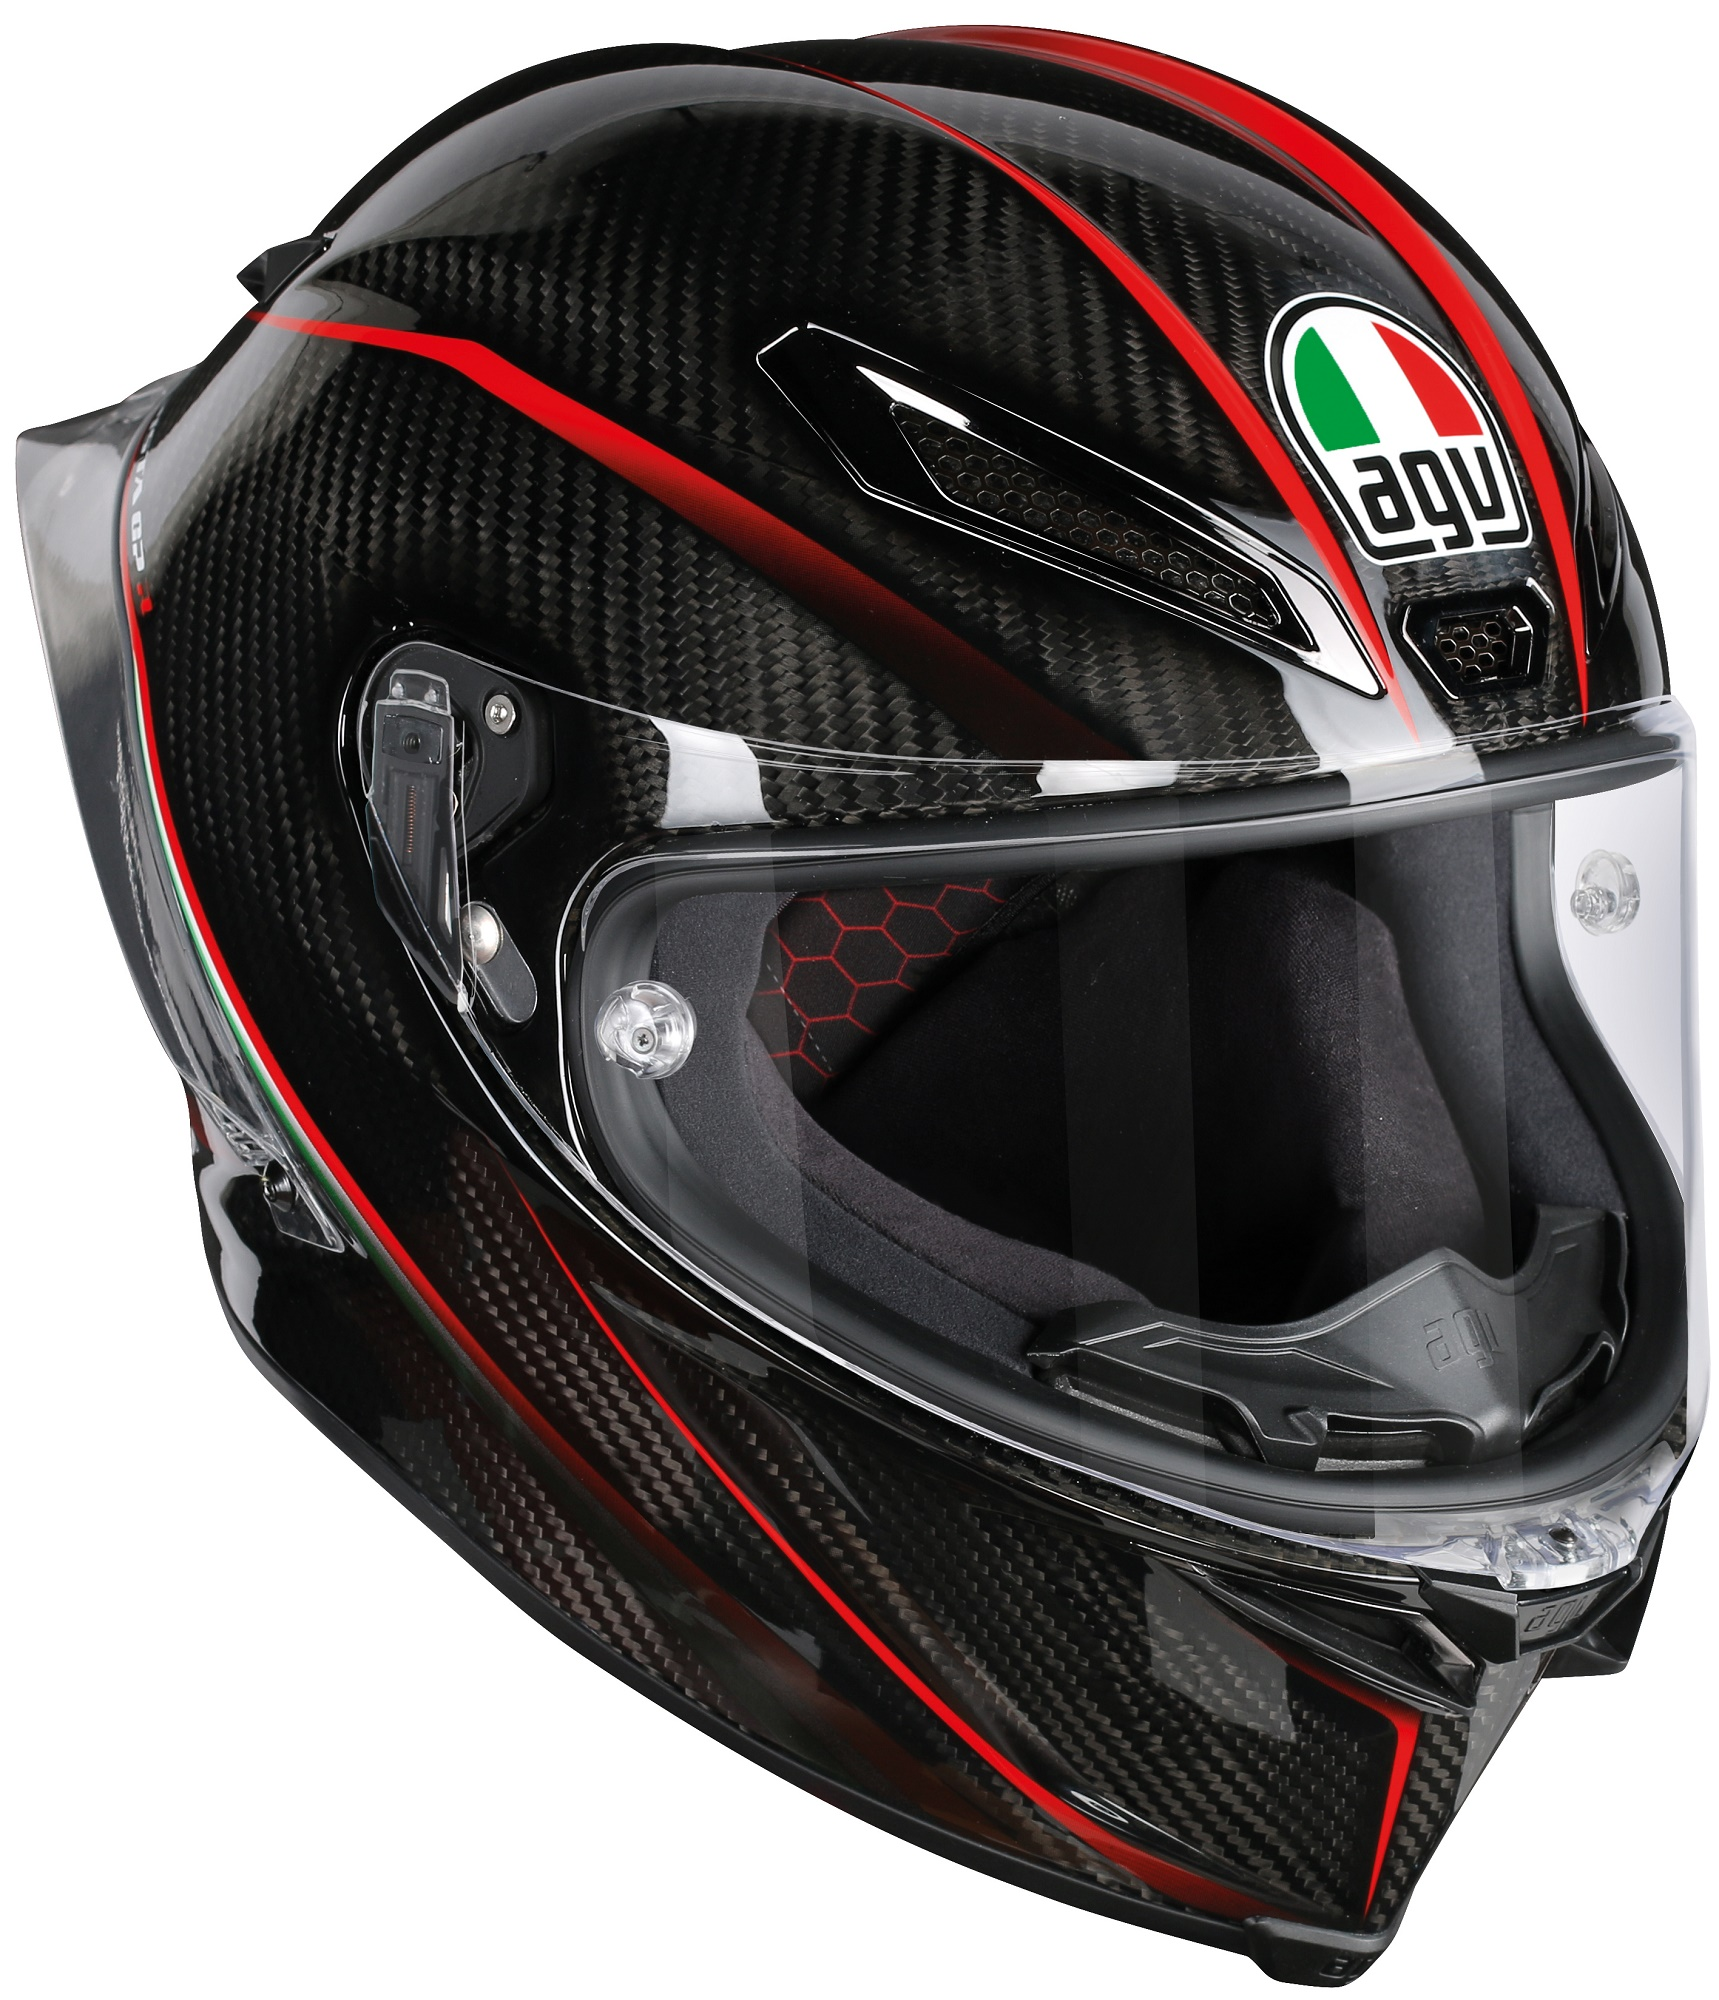 agv pista gp r gran premio italia full face helmets free uk delivery. Black Bedroom Furniture Sets. Home Design Ideas